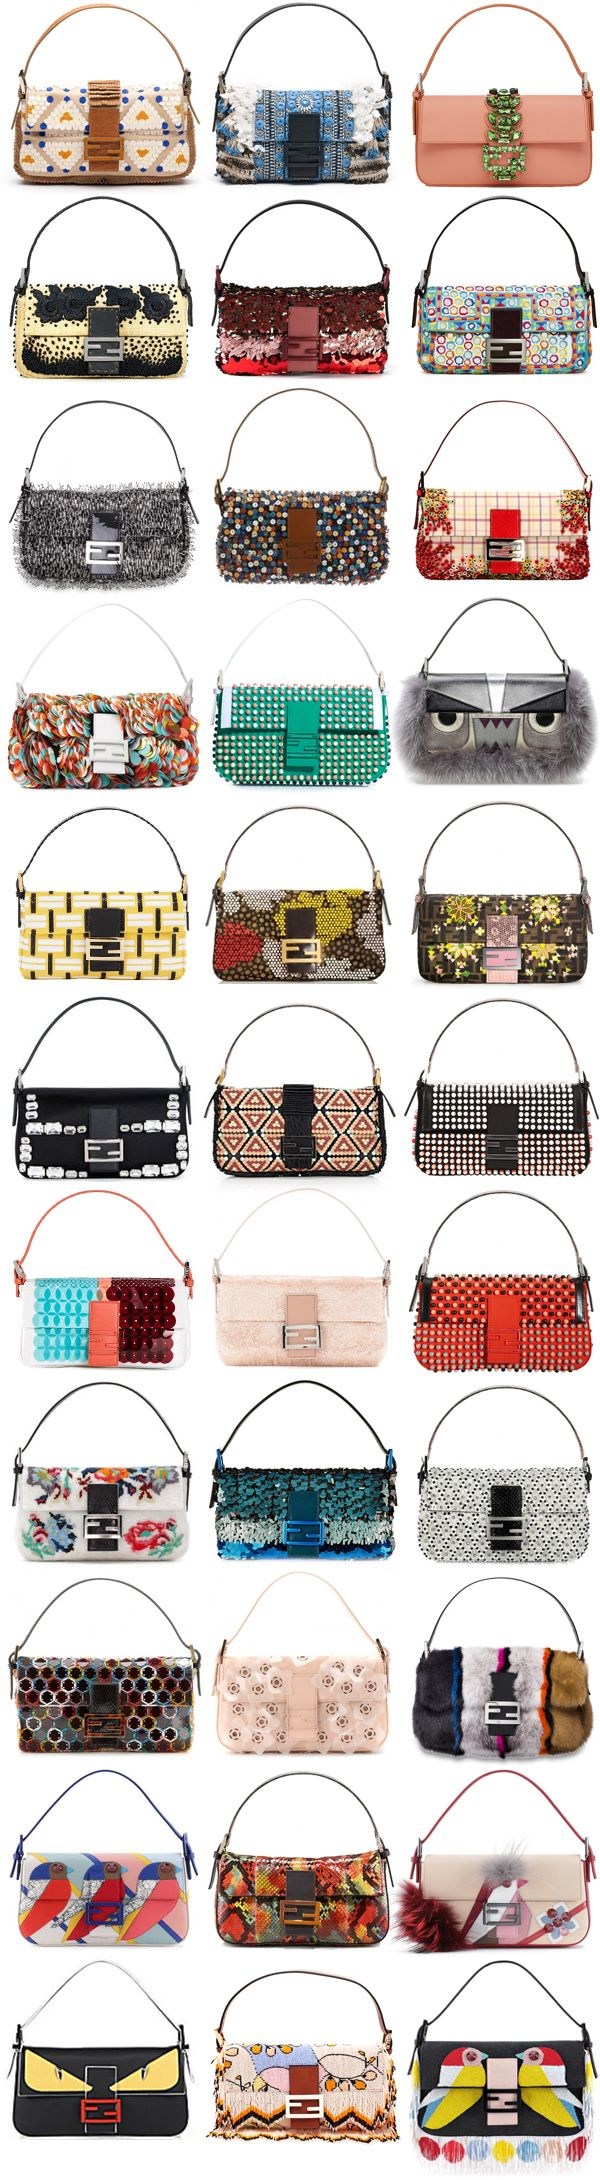 FENDI BAGUETTE // The Perfect Collectors Obsession! Women's Handbags & Wallets - amzn.to/2j9xWYI Clothing, Shoes & Jewelry : Women : Handbags & Wallets http://amzn.to/2lvjsr9